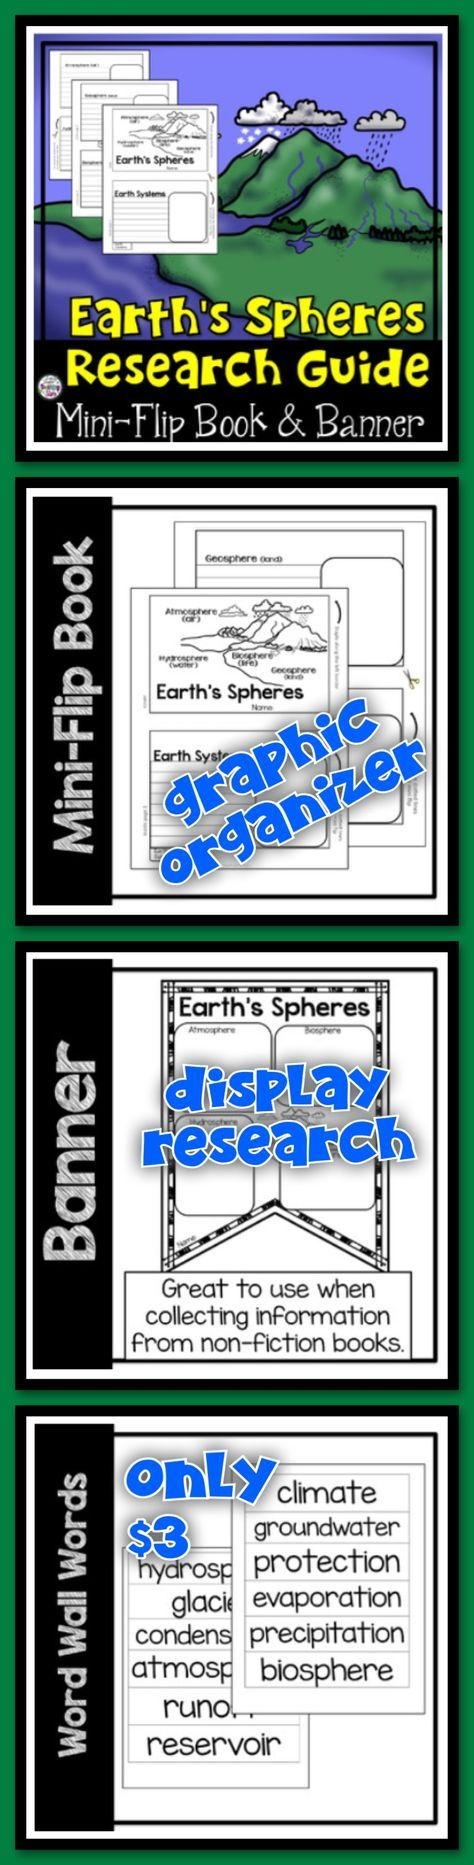 Earth's Spheres Research Flip-Book and Banner will provide a graphic organizer students can use while researching about the Earth's Spheres. Students will collect information on hydrosphere, atmosphere, biosphere, and geosphere in their flip books. Students can also display their research on a Earth's Spheres banner. Word Wall Words are also included. These resources were designed for grades 4th-6th to use to organize students' research about The Earth's Spheres.